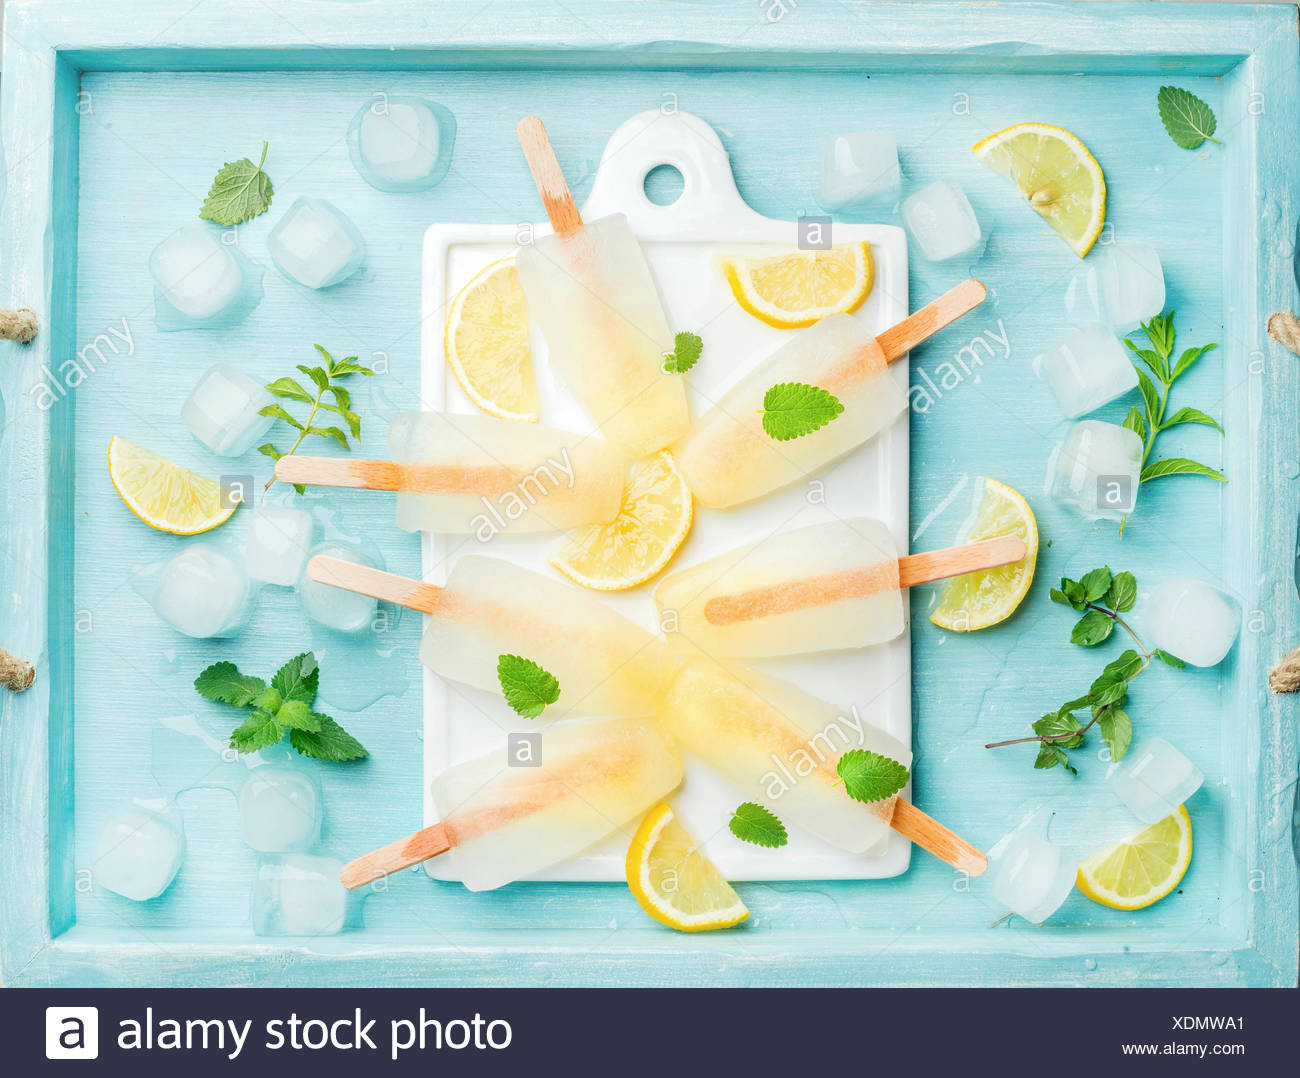 Lemon ice lollies on white ceramic board served with lemon slices, ice cubes and mint leaves over blue Turquoise backdrop, top v Stock Photo